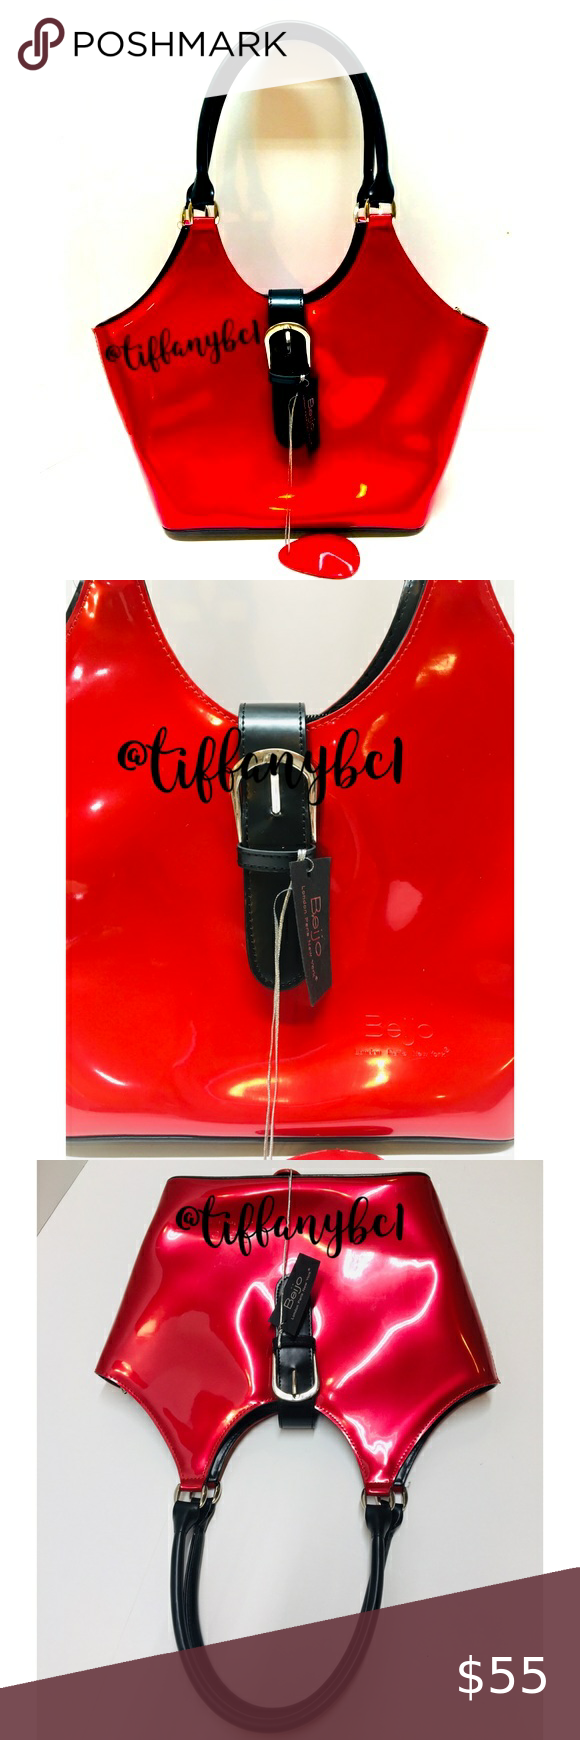 🆕 Beijo Pearlescent Red Patent Leather Satchel